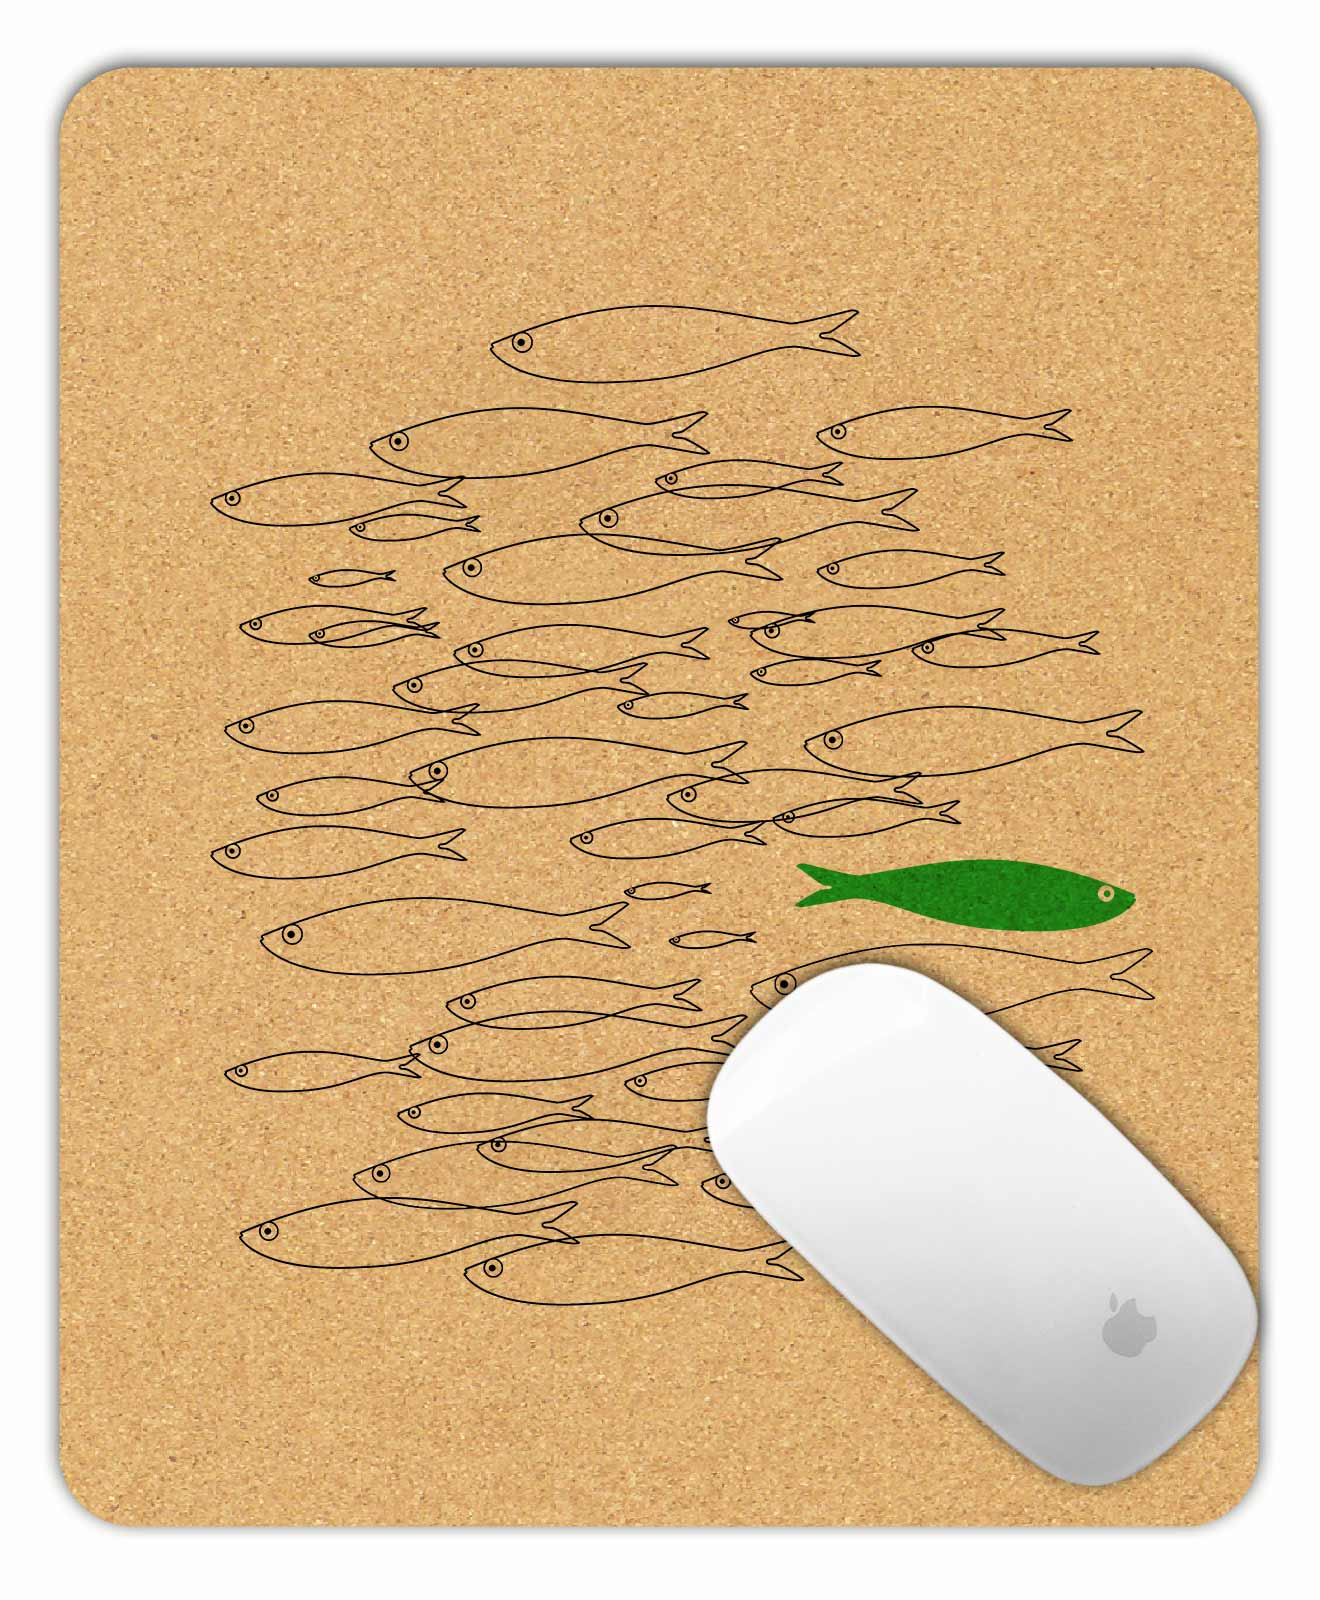 Mouse Pad Green Sardine